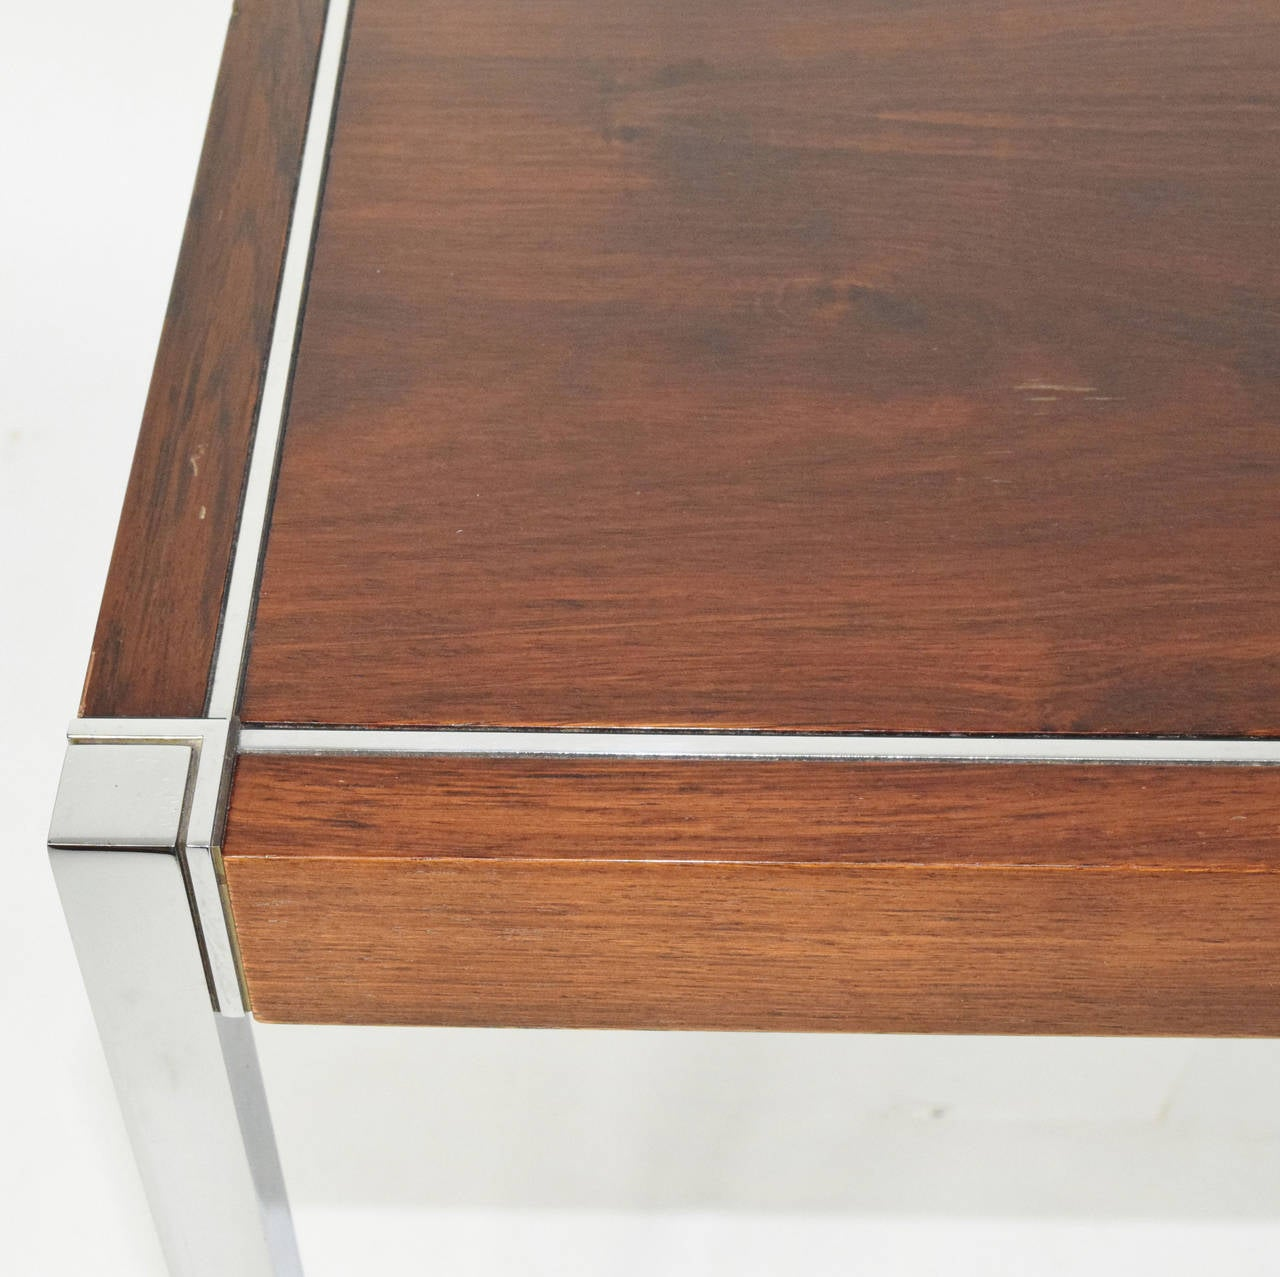 richard schultz for knoll dining table or desk for sale at 1stdibs